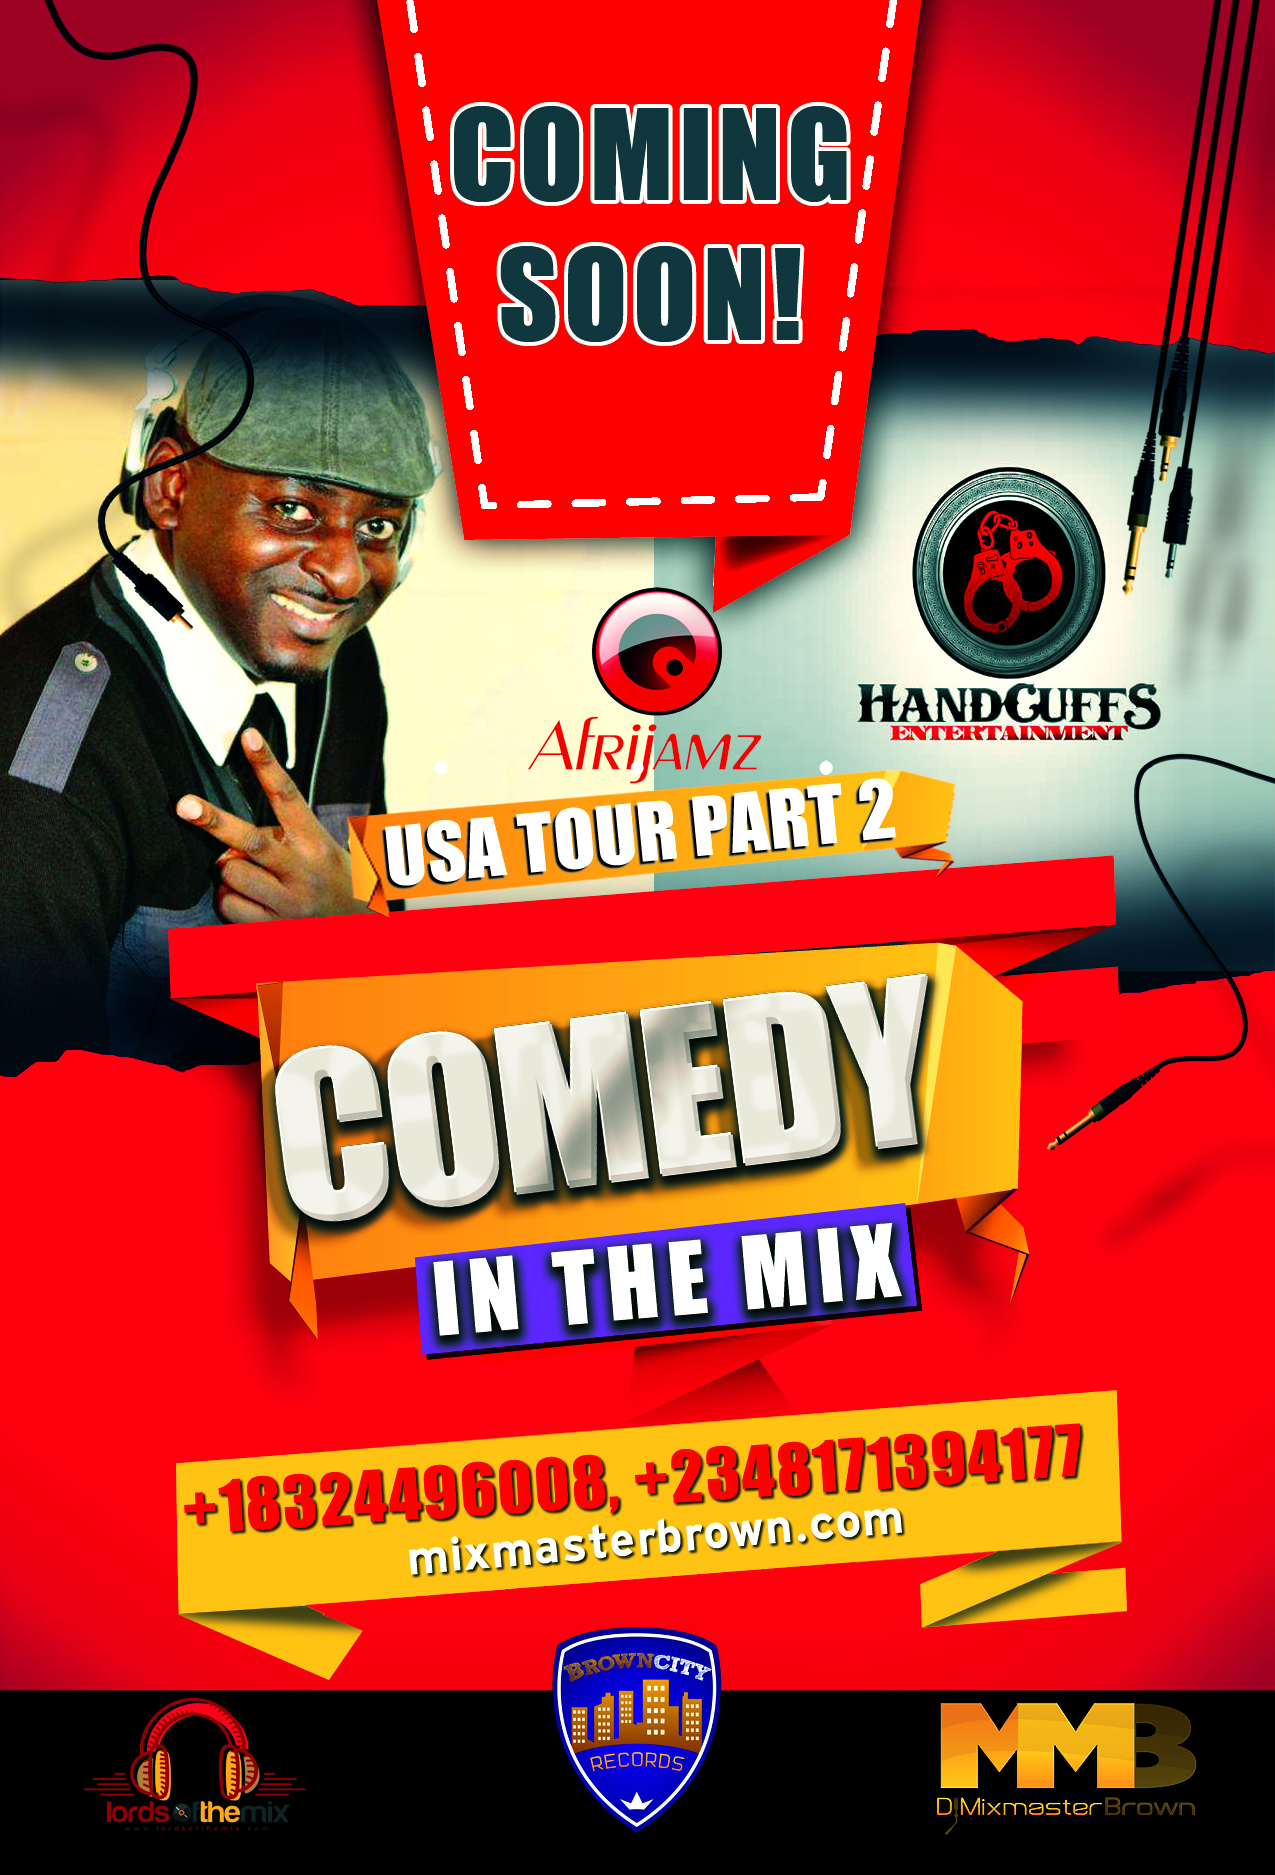 Comedy In The Mix - Senator, Funnybone & Dj Mixmasterbrown